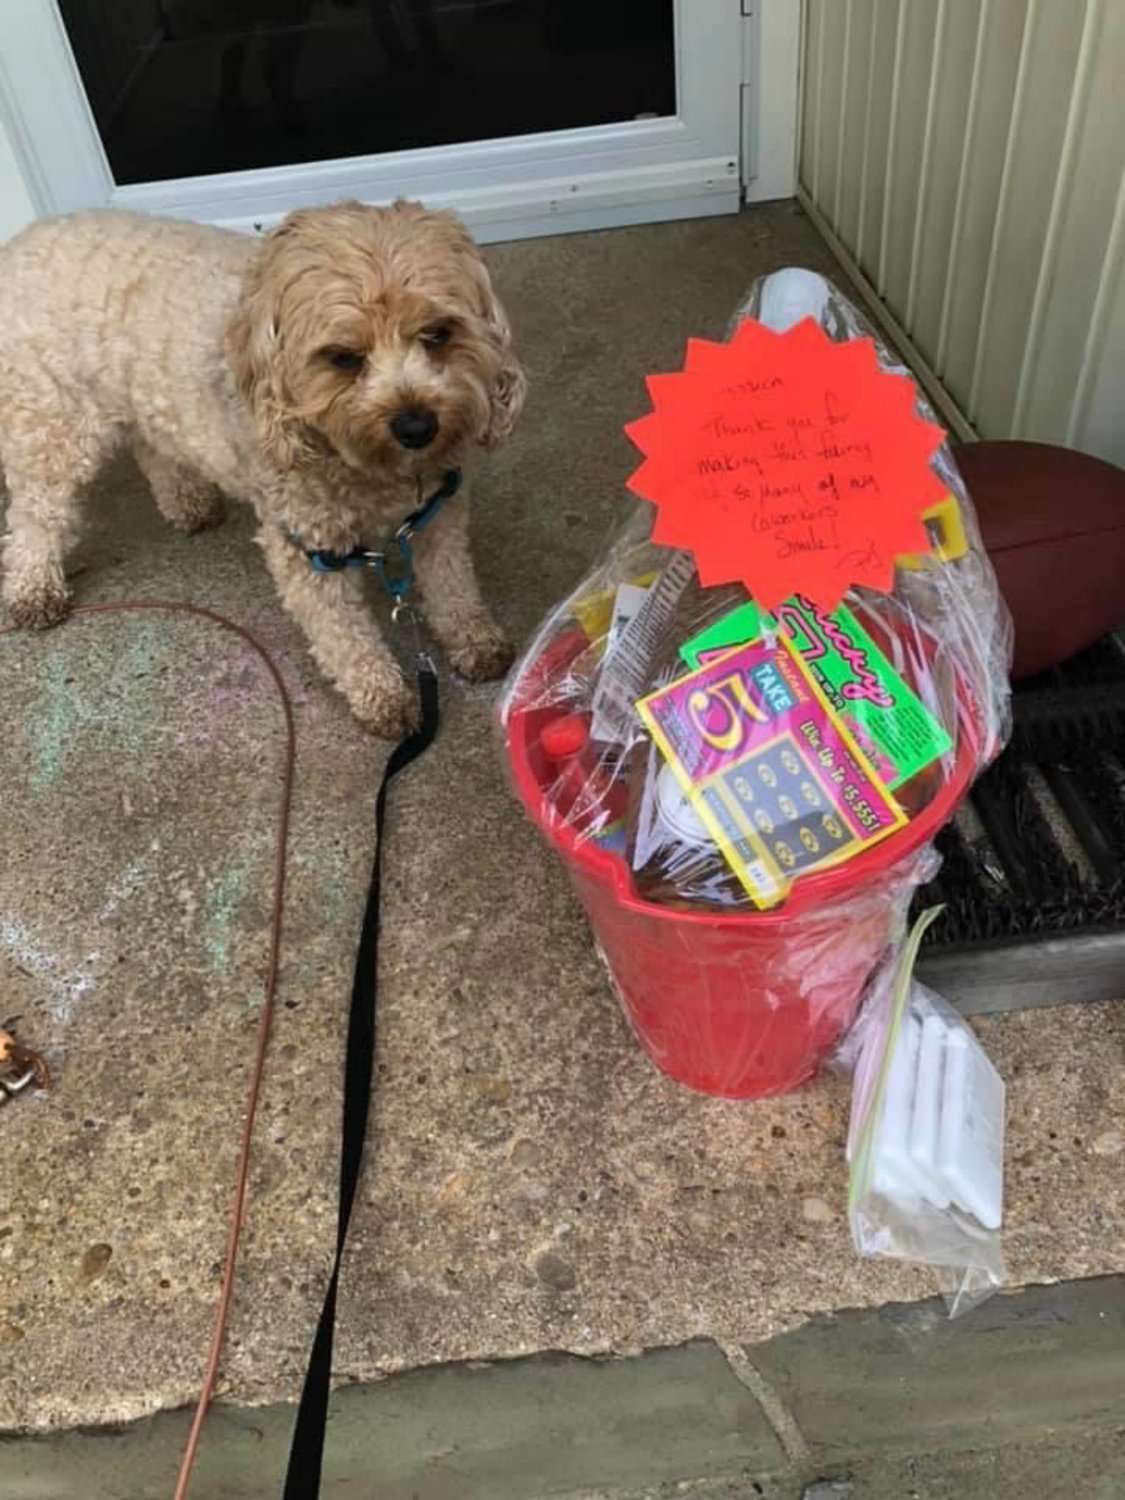 After walking her dog, Jessica Kaiser Baker, of Bayville, found this basket from the wine fairy group on her doorstep.